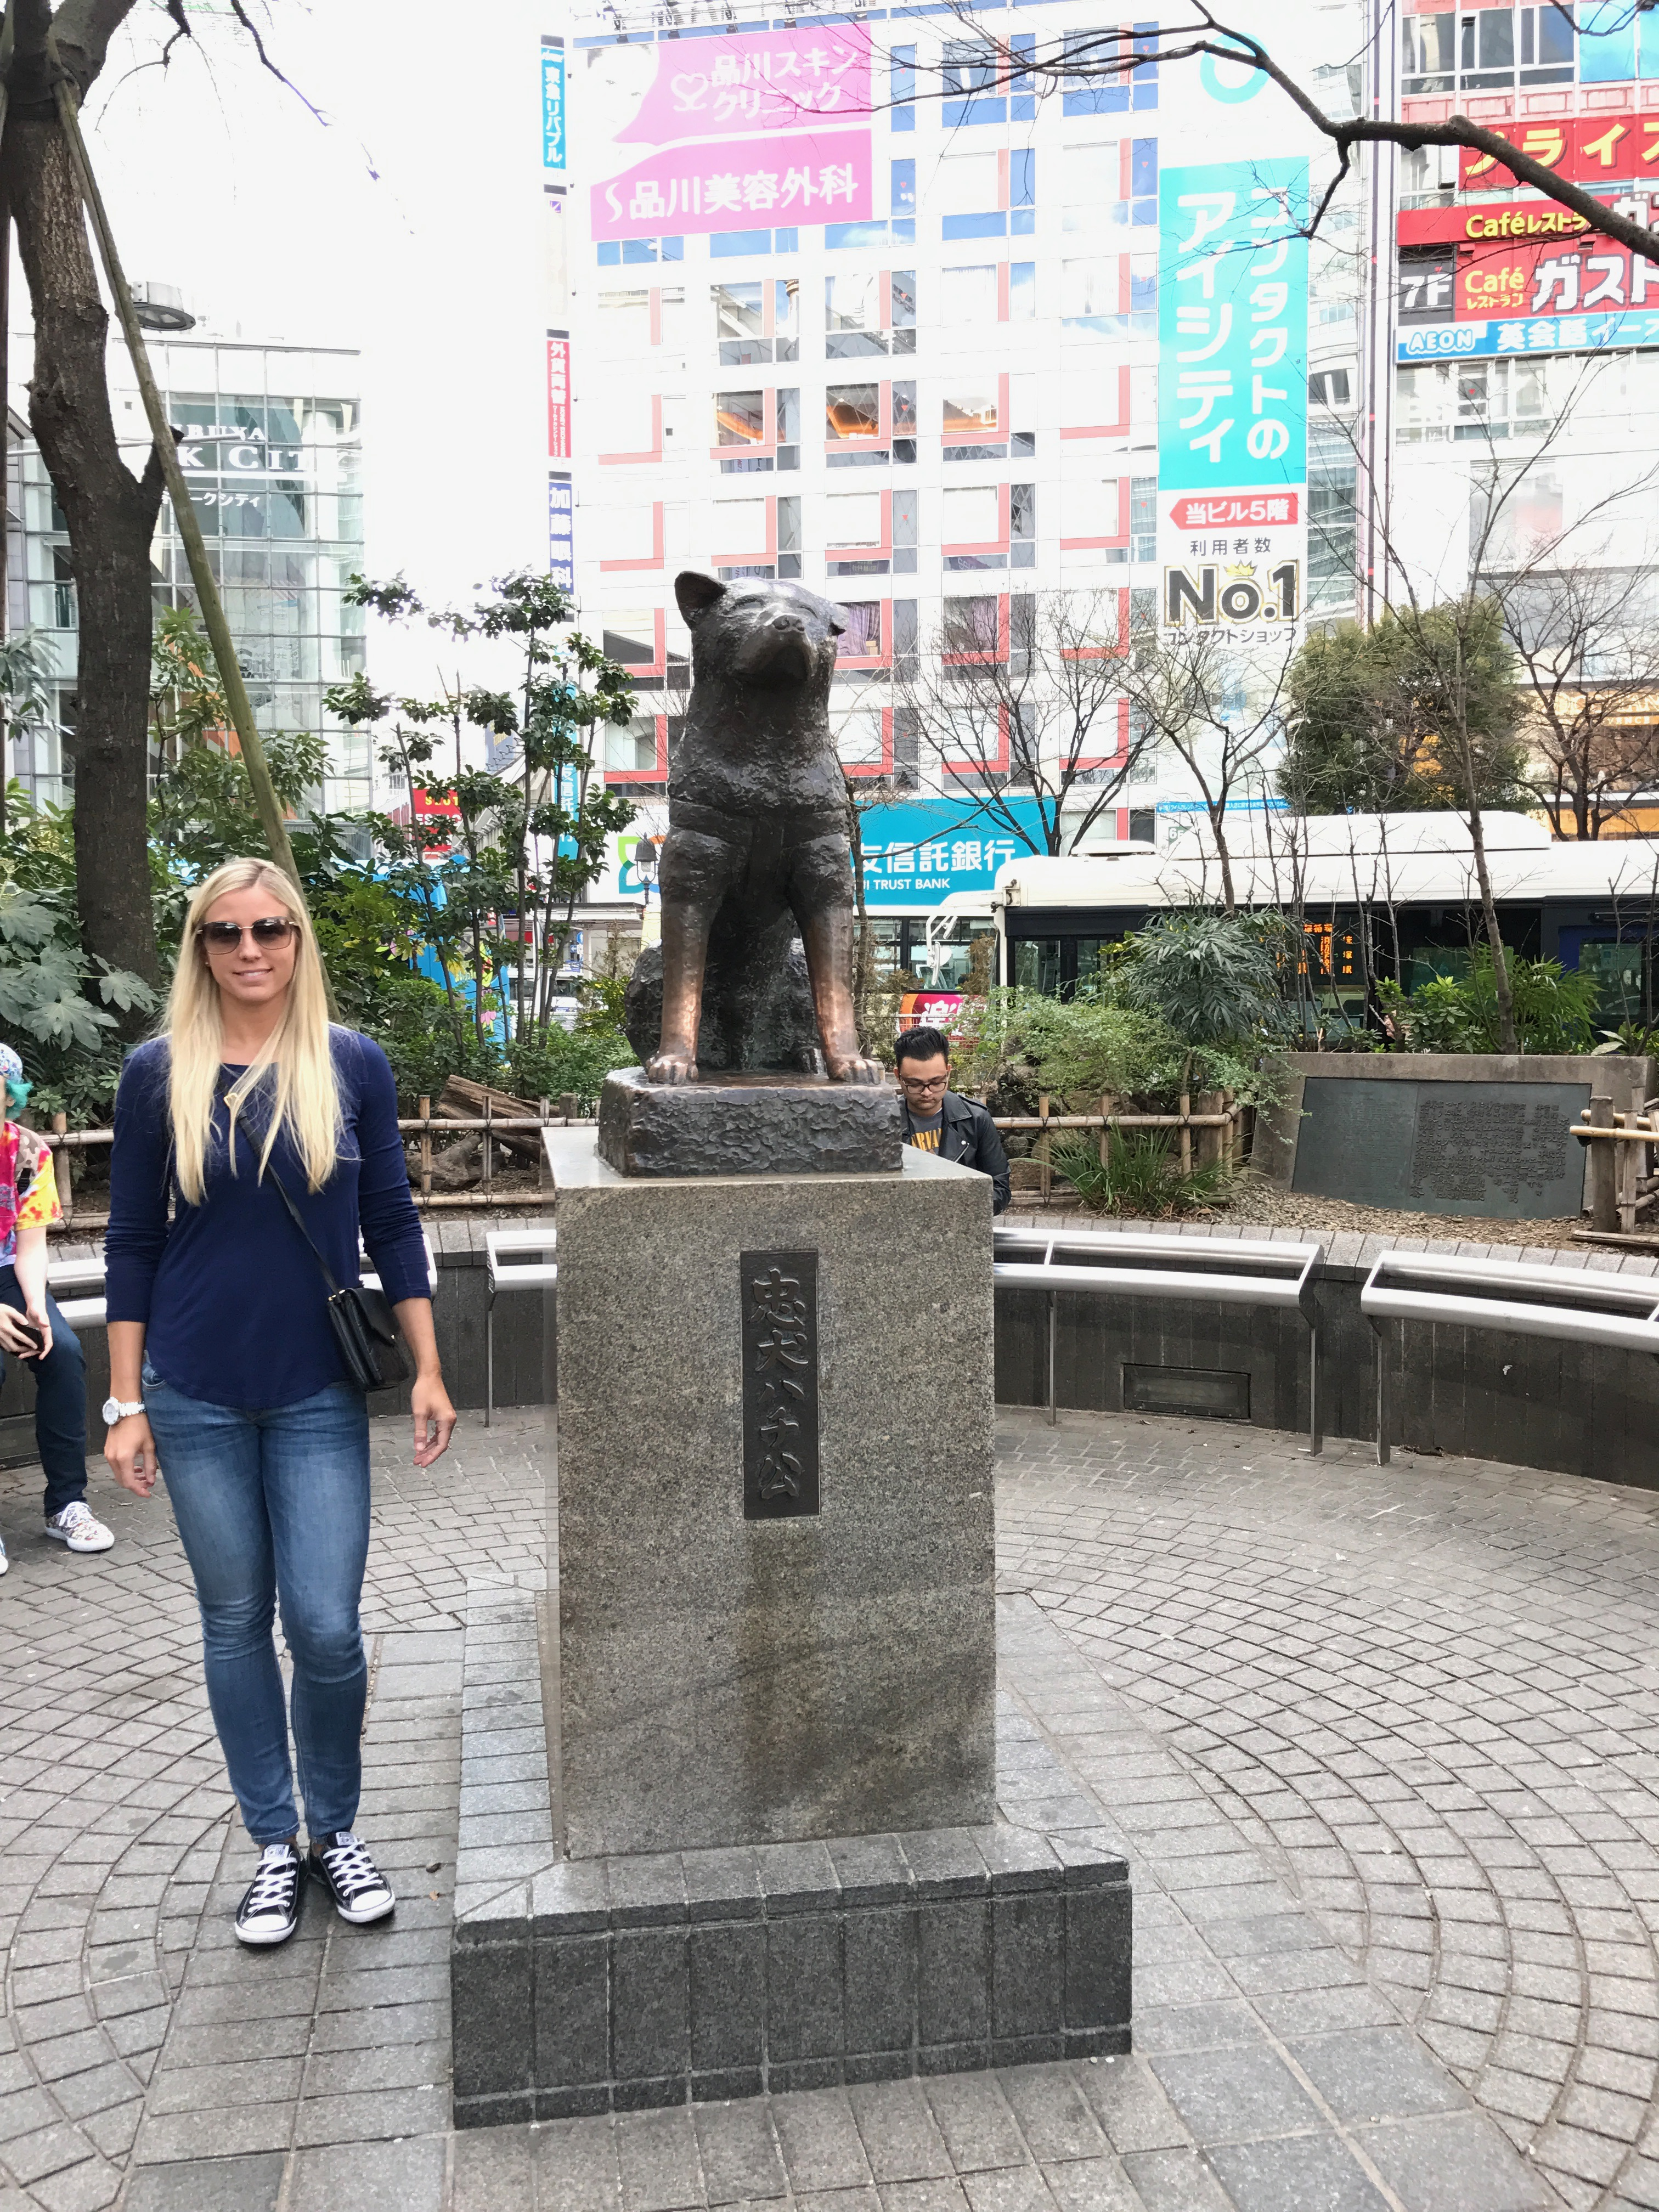 Shibuya is a HUGE shopping district in Tokyo, Japan!